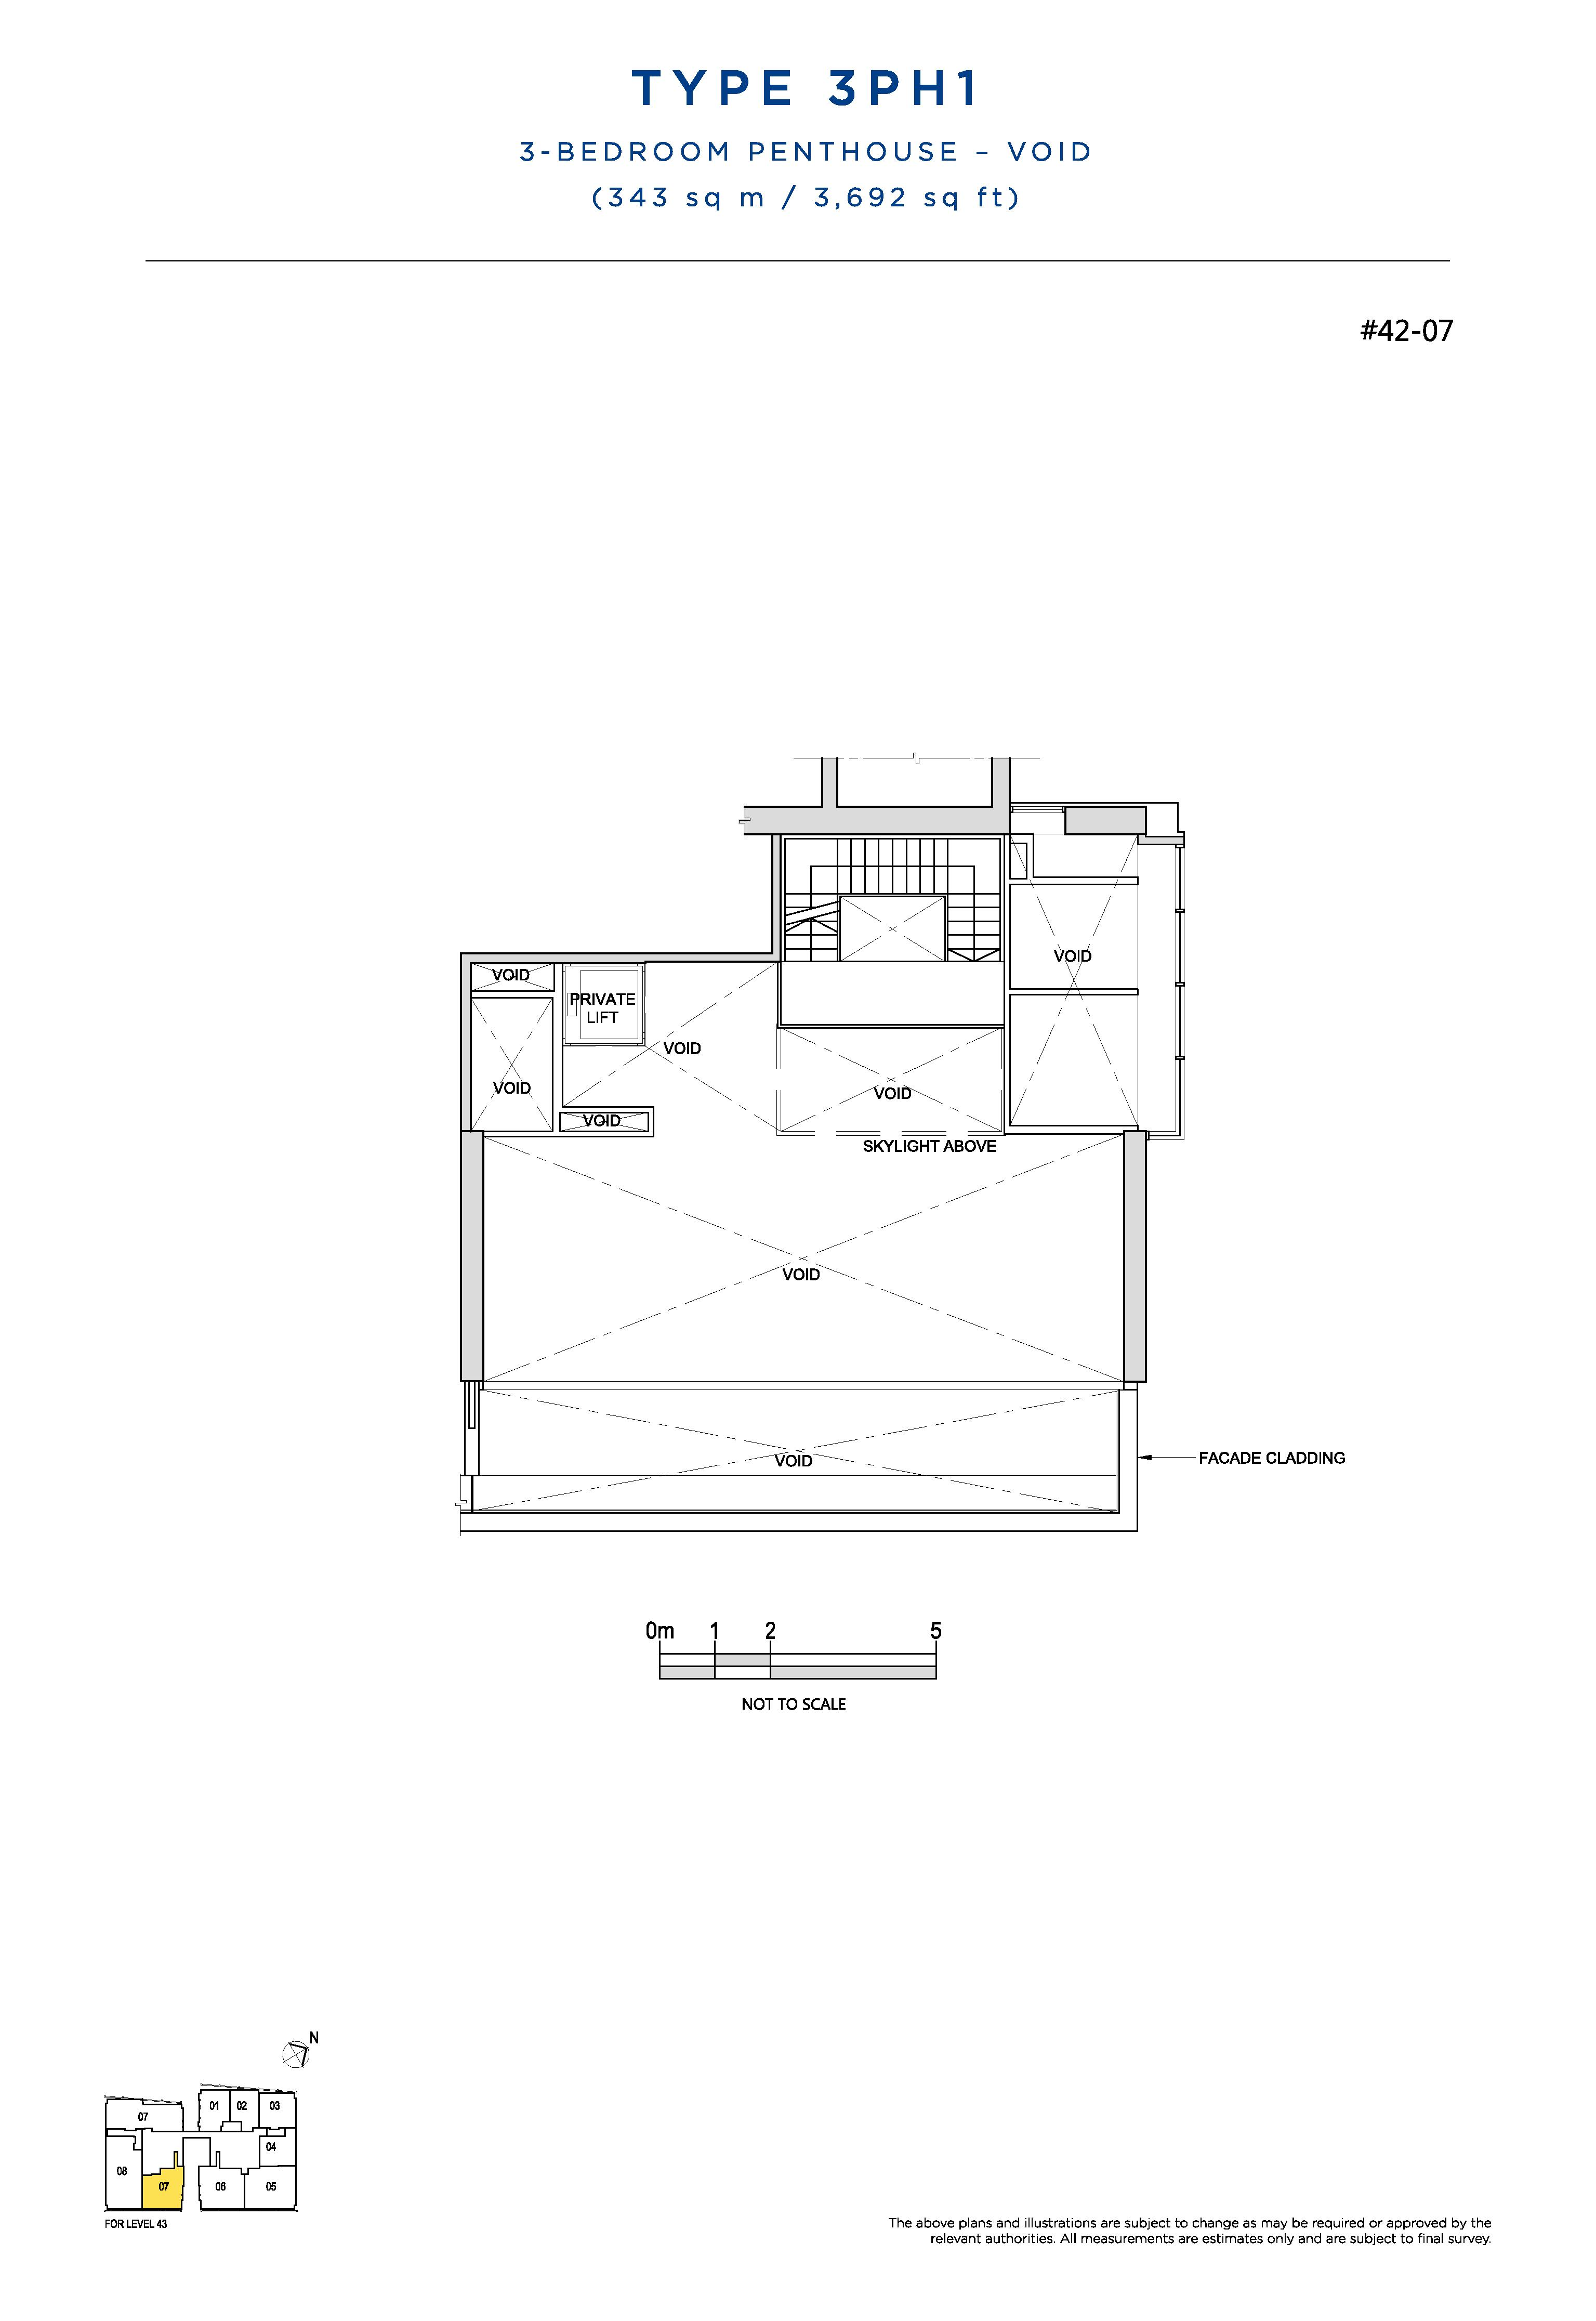 South Beach Residences 3 Bedroom Penthouse Floor Plans Type 3PH1(Void)